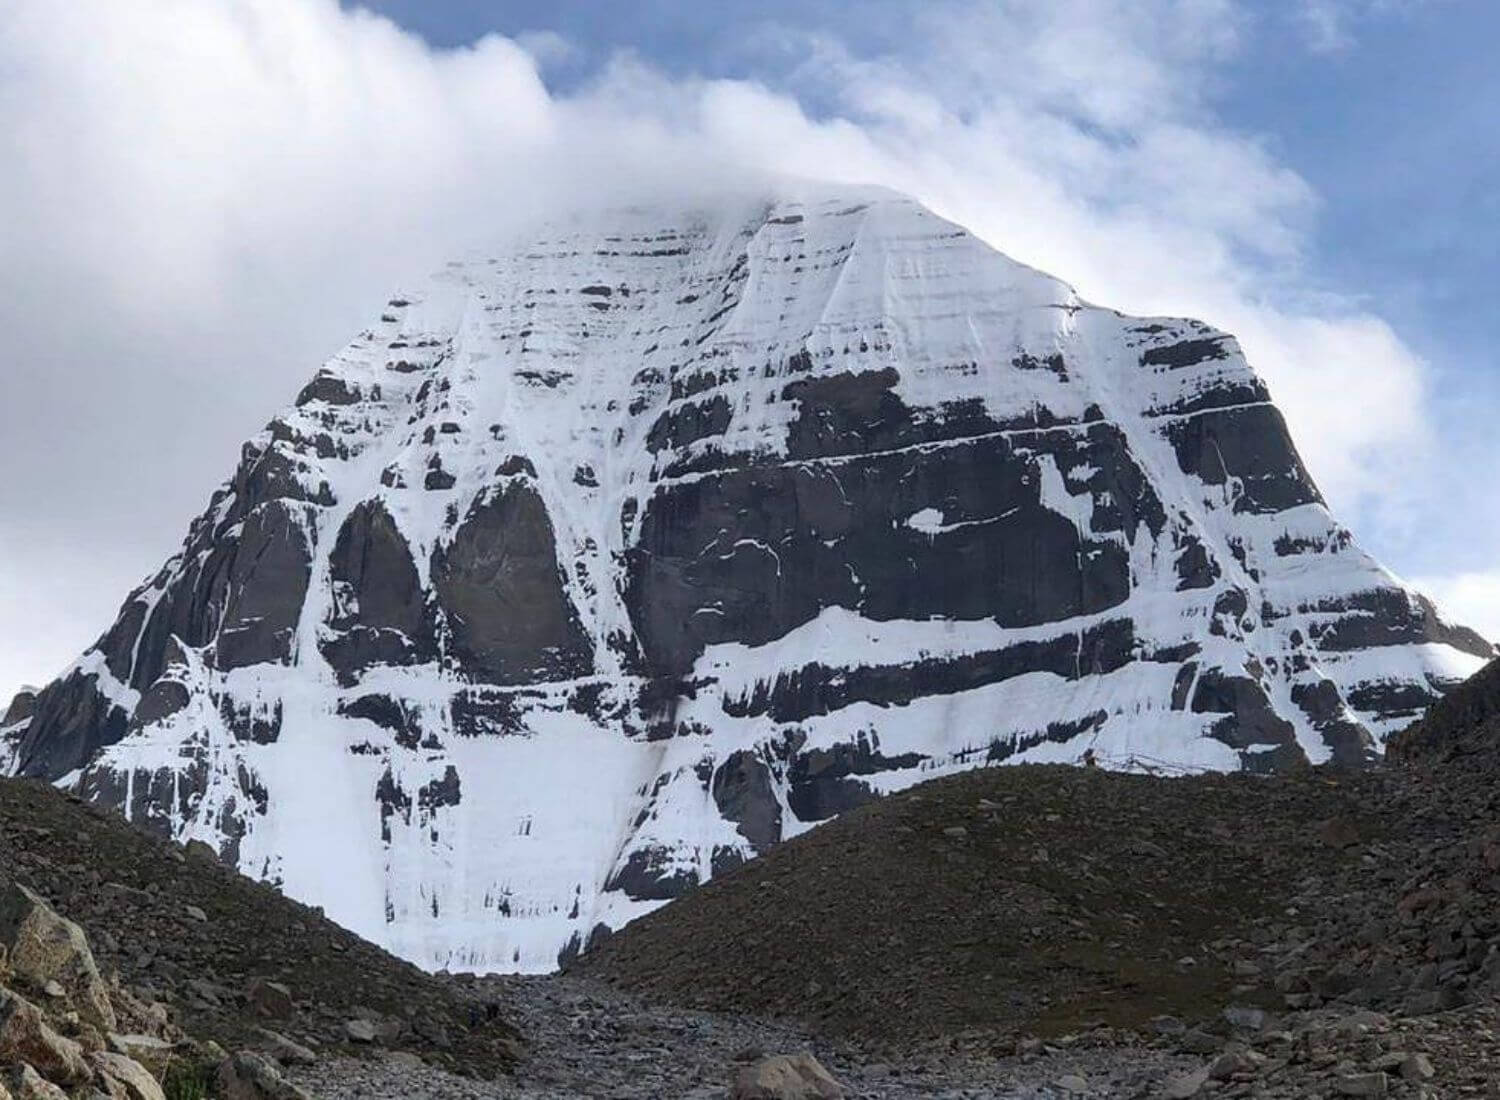 The Unsolved Mystery Of Mount Kailash Where Lord Shiva Resides